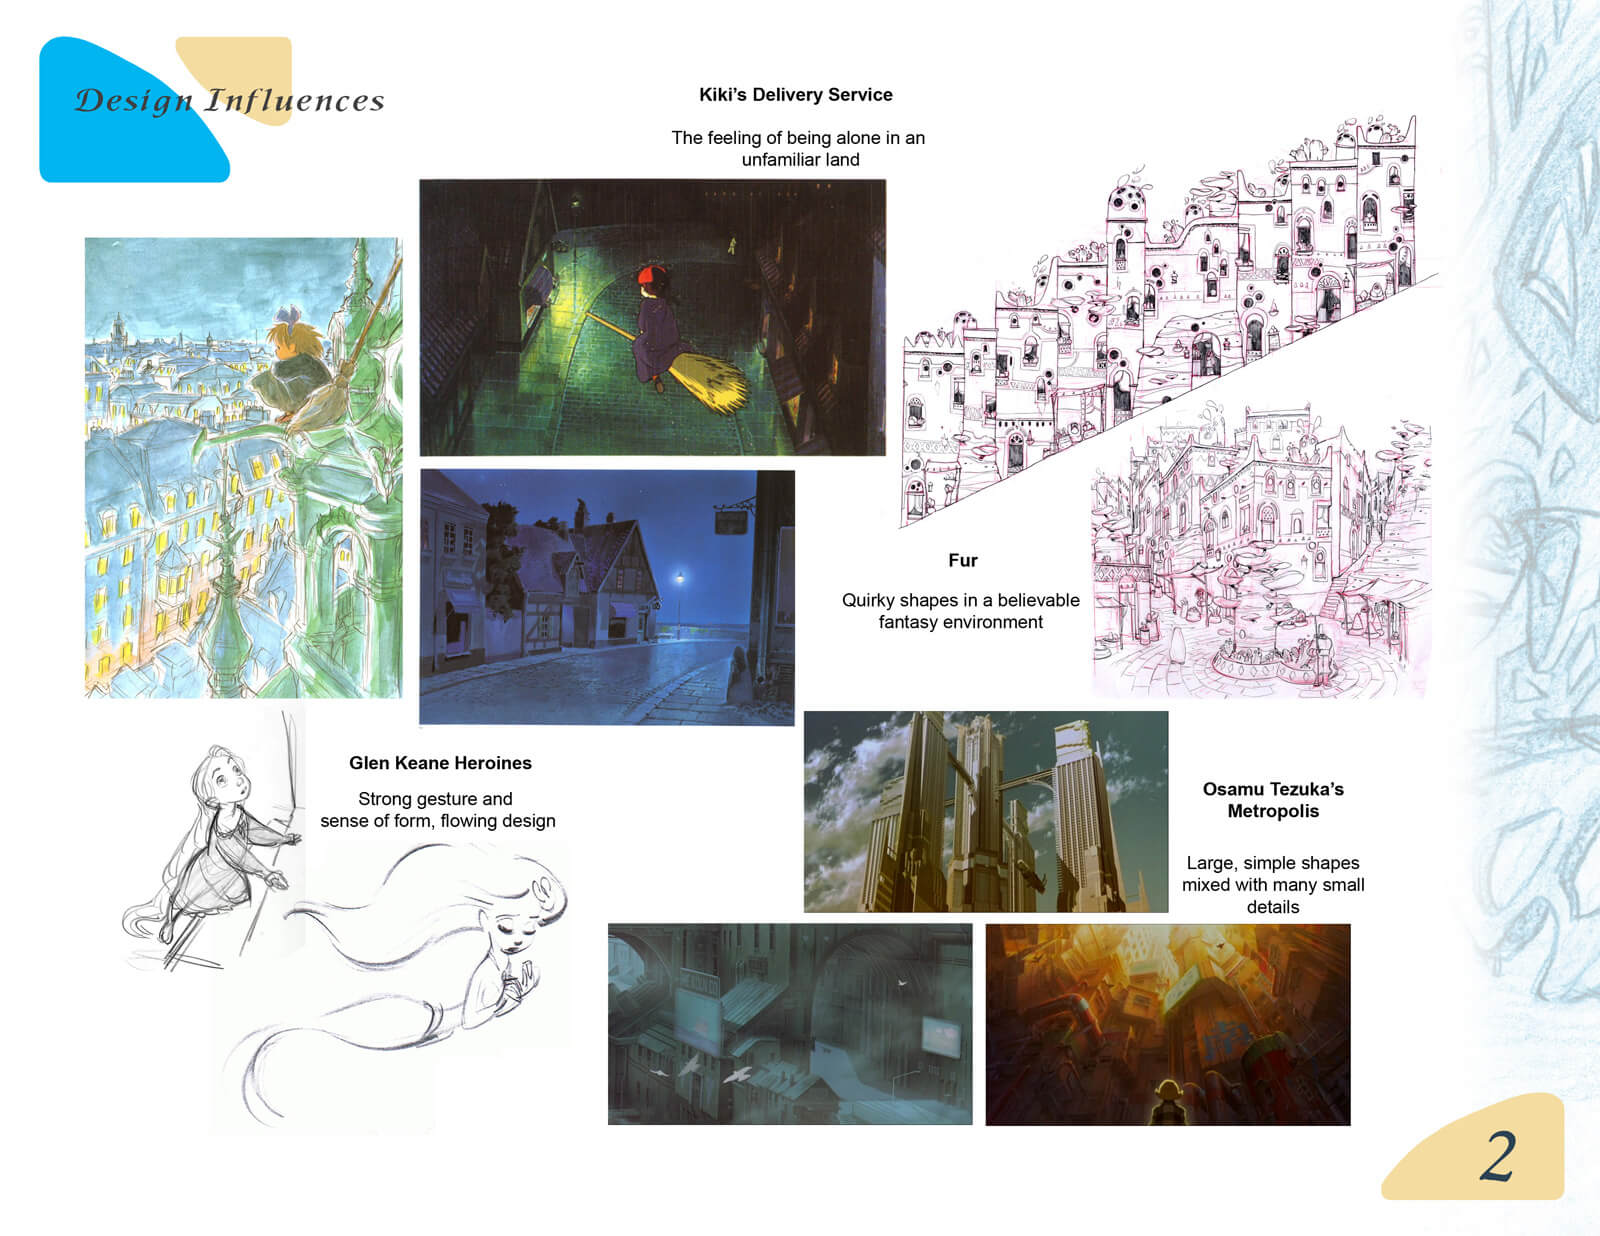 Presentation slide depicting the design influences of Beneath the Night Sea, including Kiki's Delivery Service and Metropolis